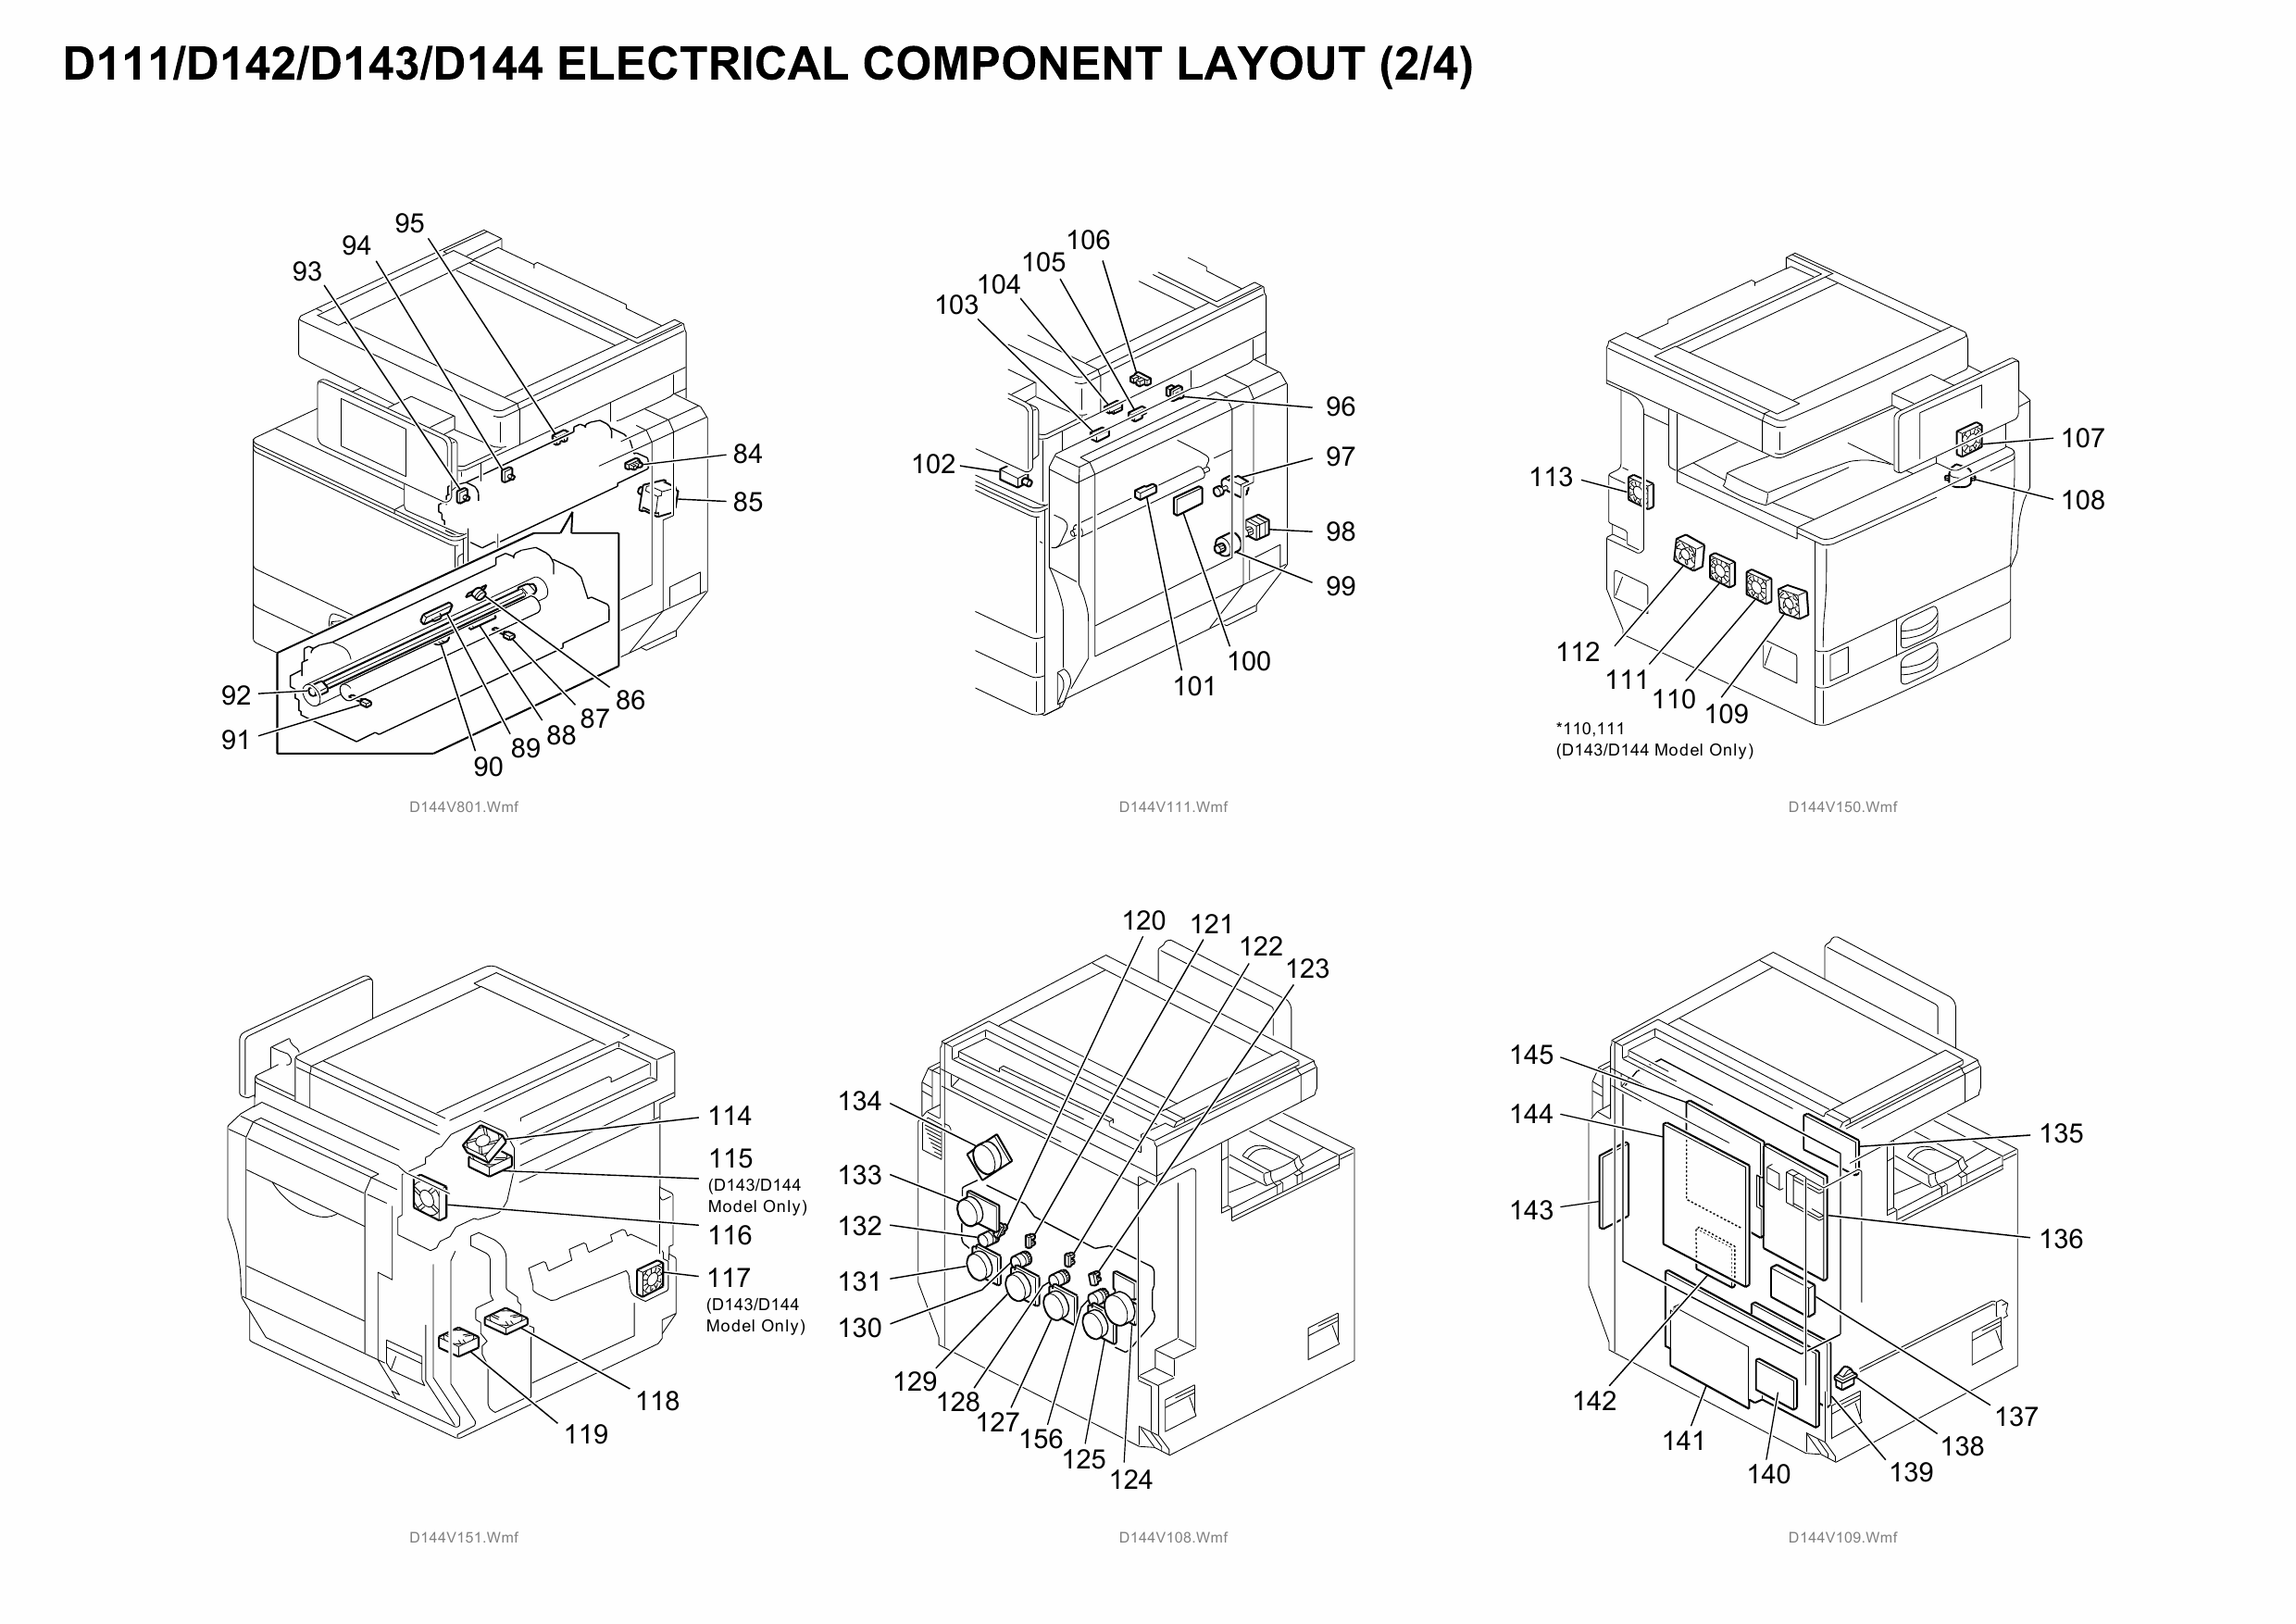 RICOH Aficio MP-C4502 C5502 D143 D144 Circuit Diagram